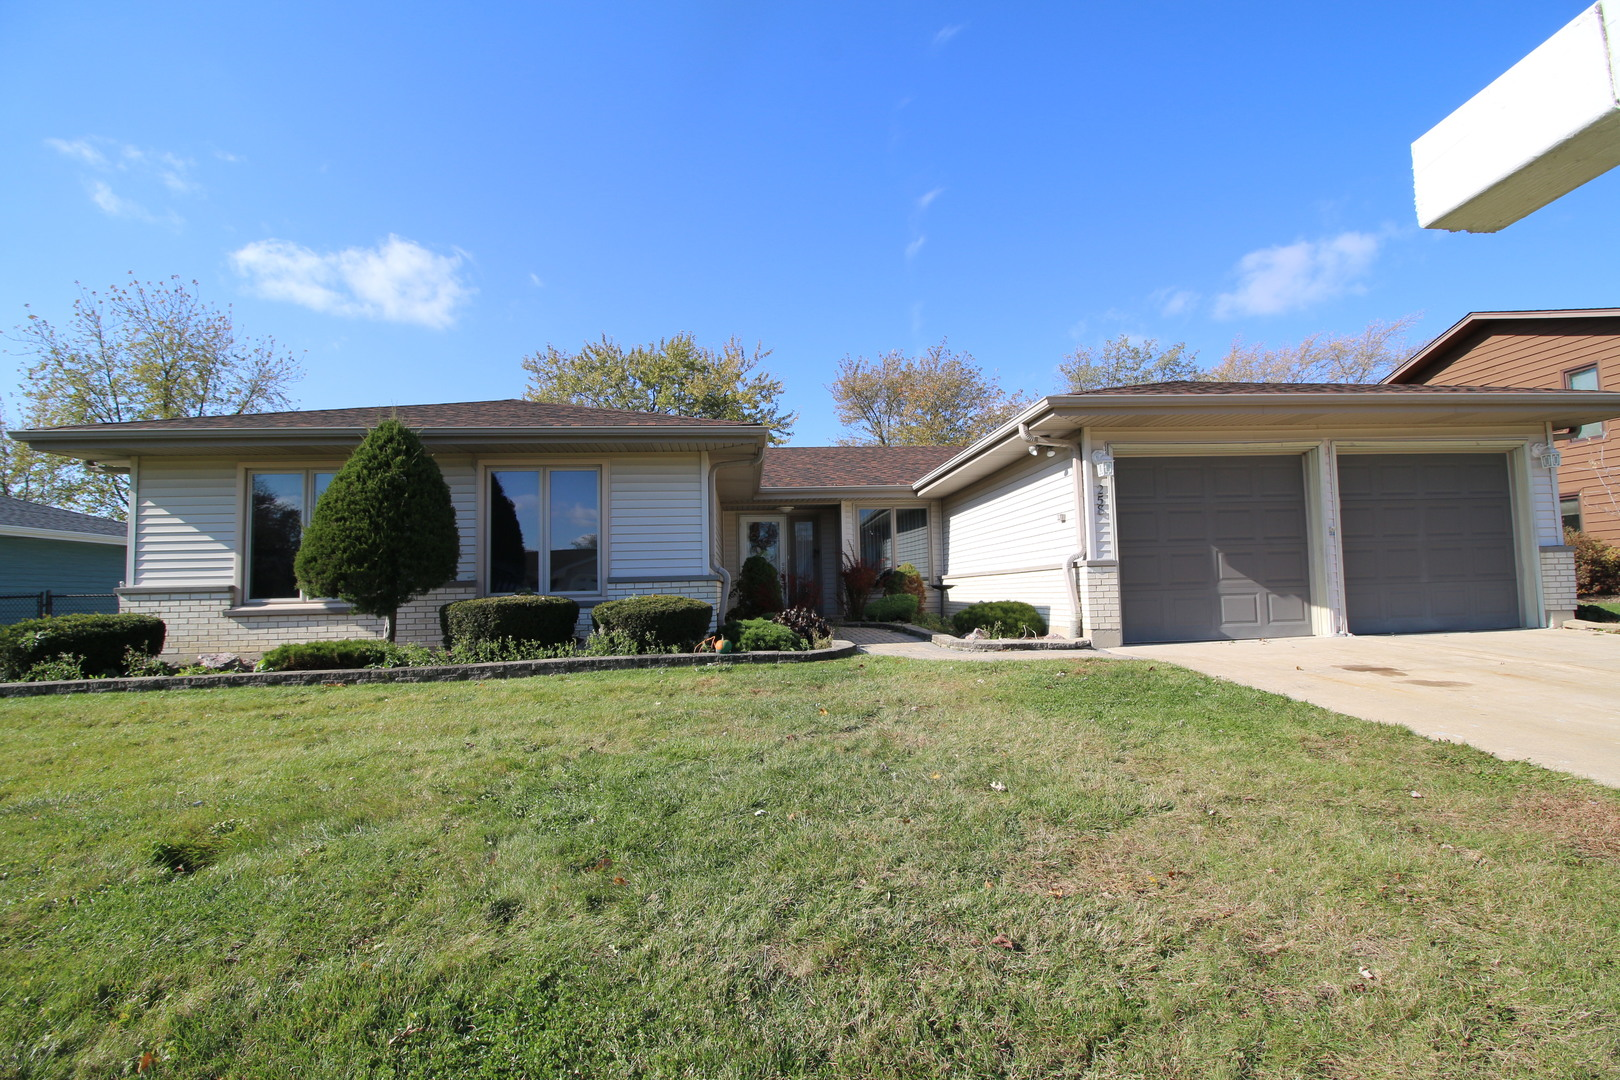 258 Crestwood Lane 60108 - One of Bloomingdale Homes for Sale